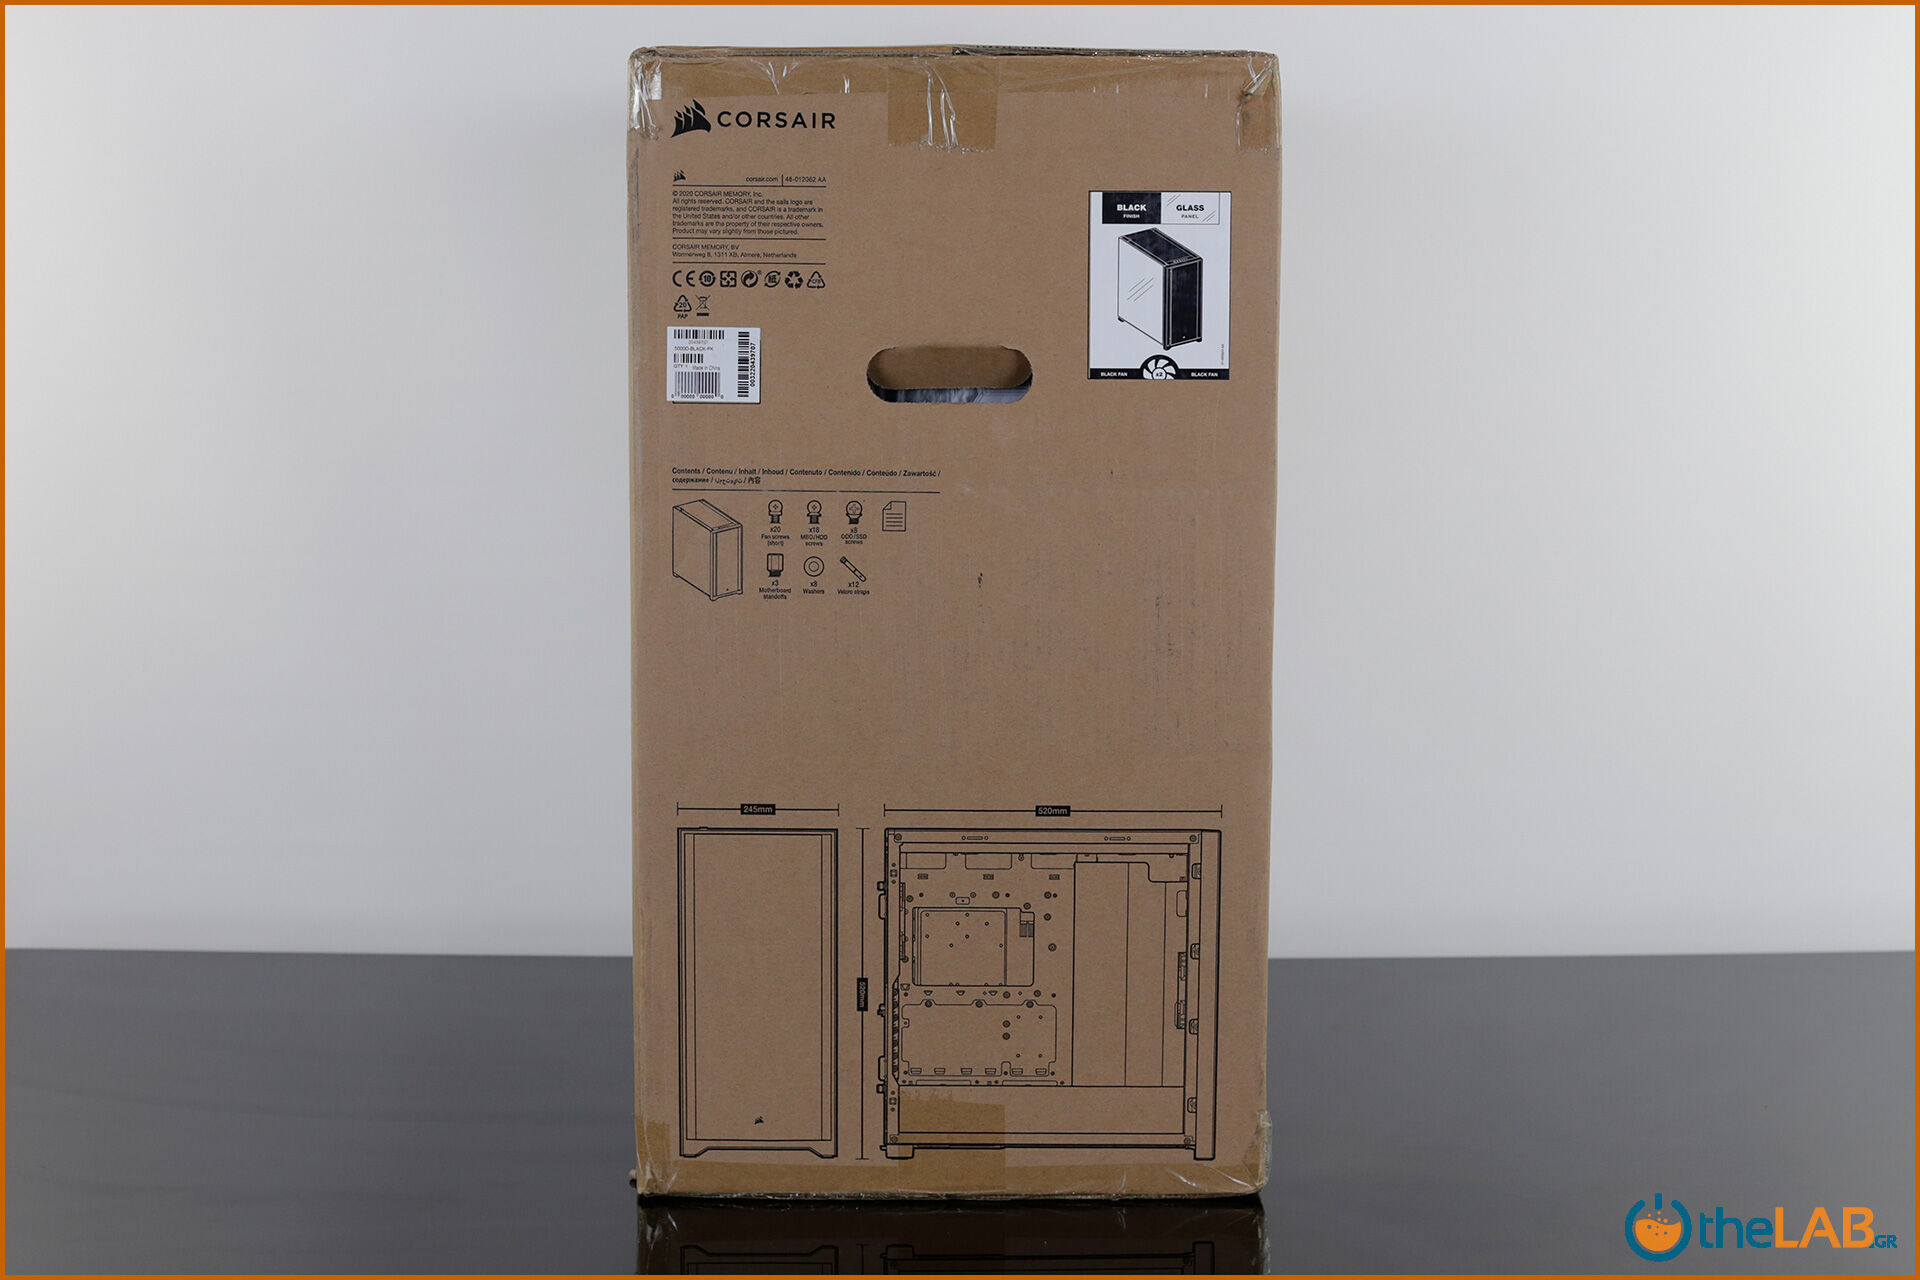 Corsair_icue_5000D__case_smart_exterior_interior_mid_tower_gaming_case_smart_review_image617.jpg